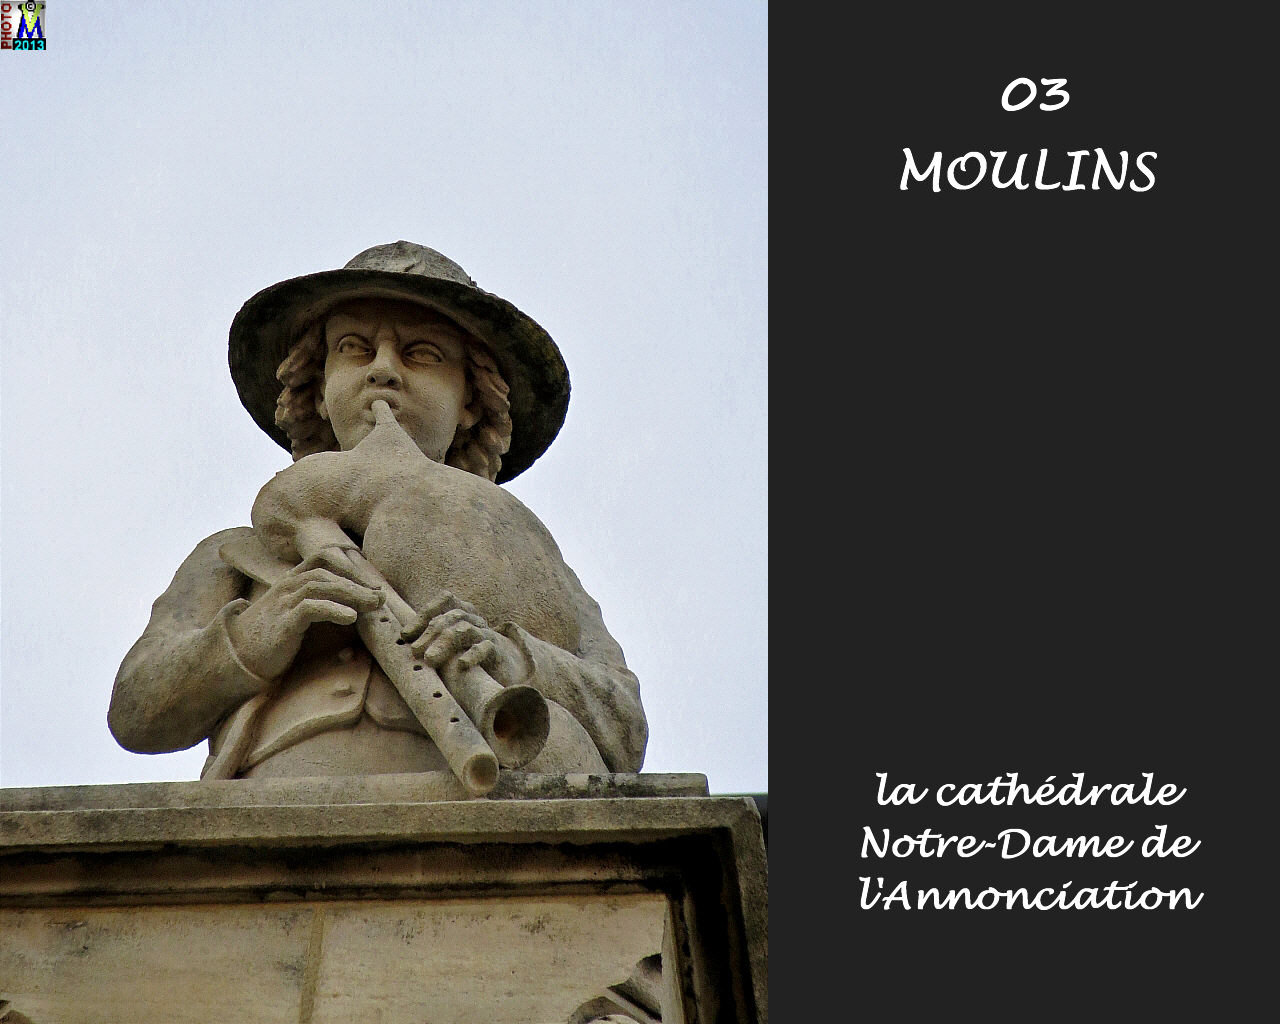 03MOULINS_cathedrale_132.jpg